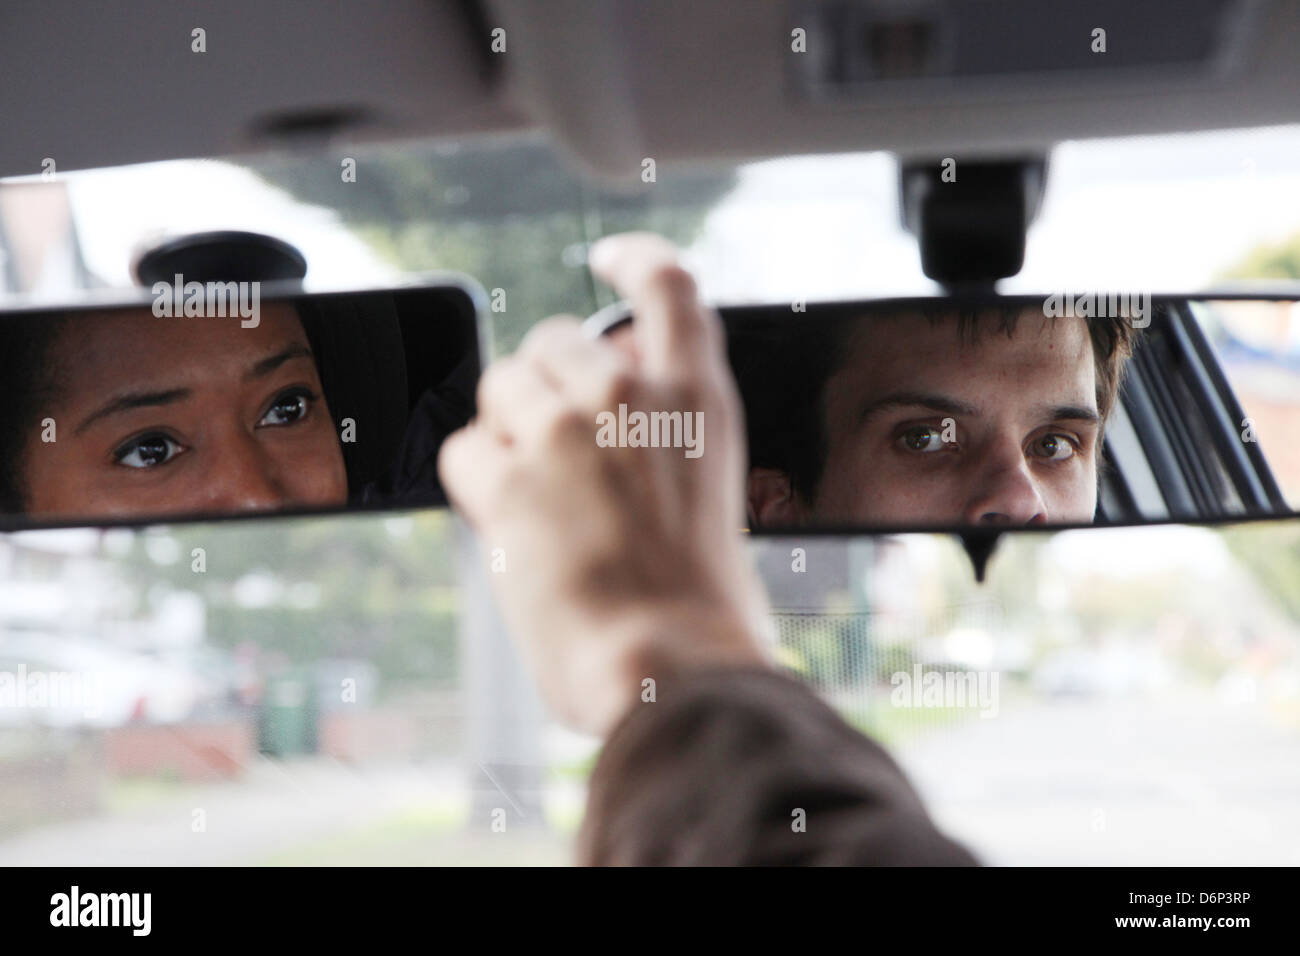 Mirrors showing a new driver and instructor in the mirrors - Stock Image